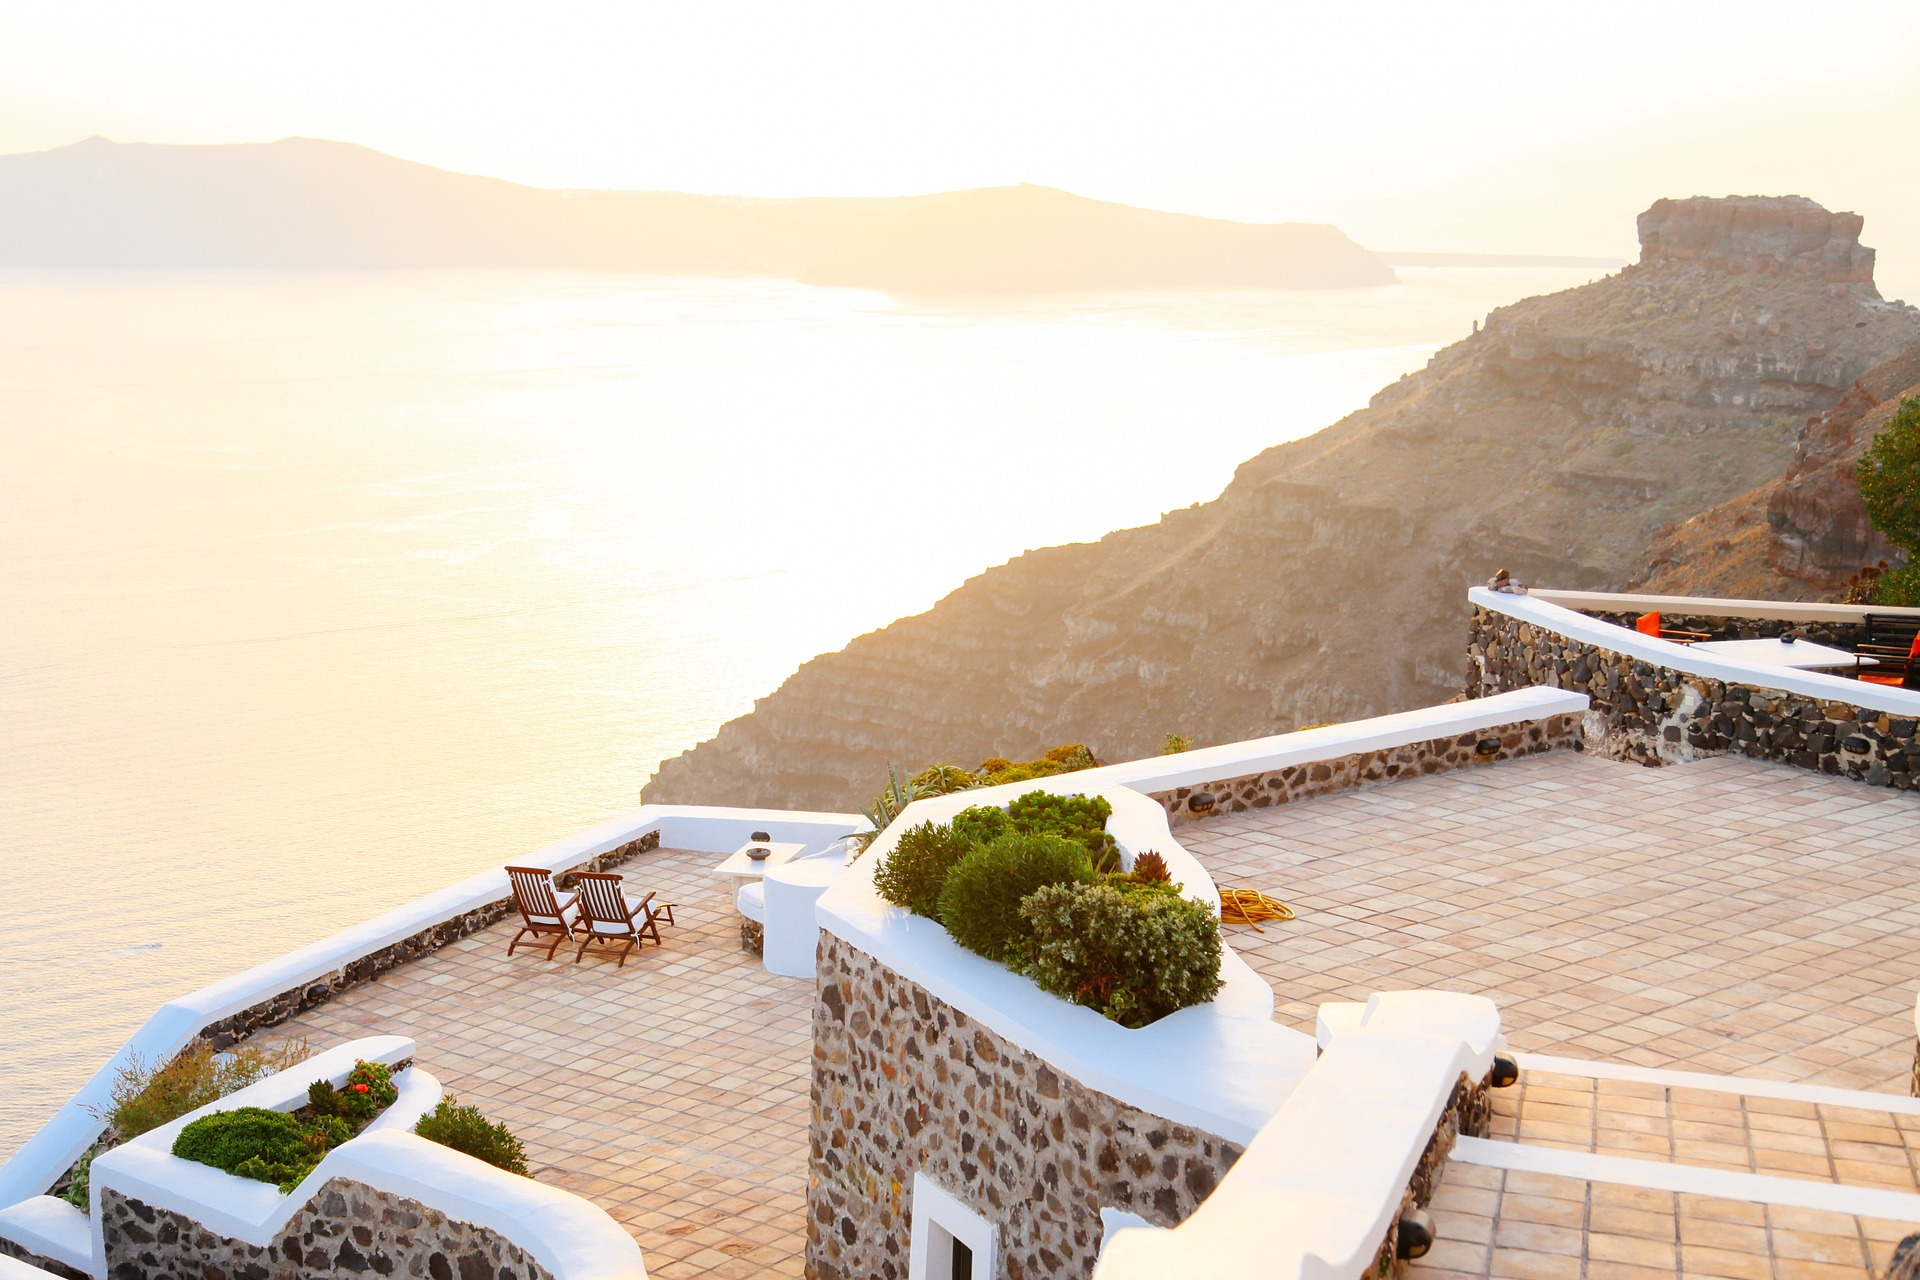 Terrace view, travel